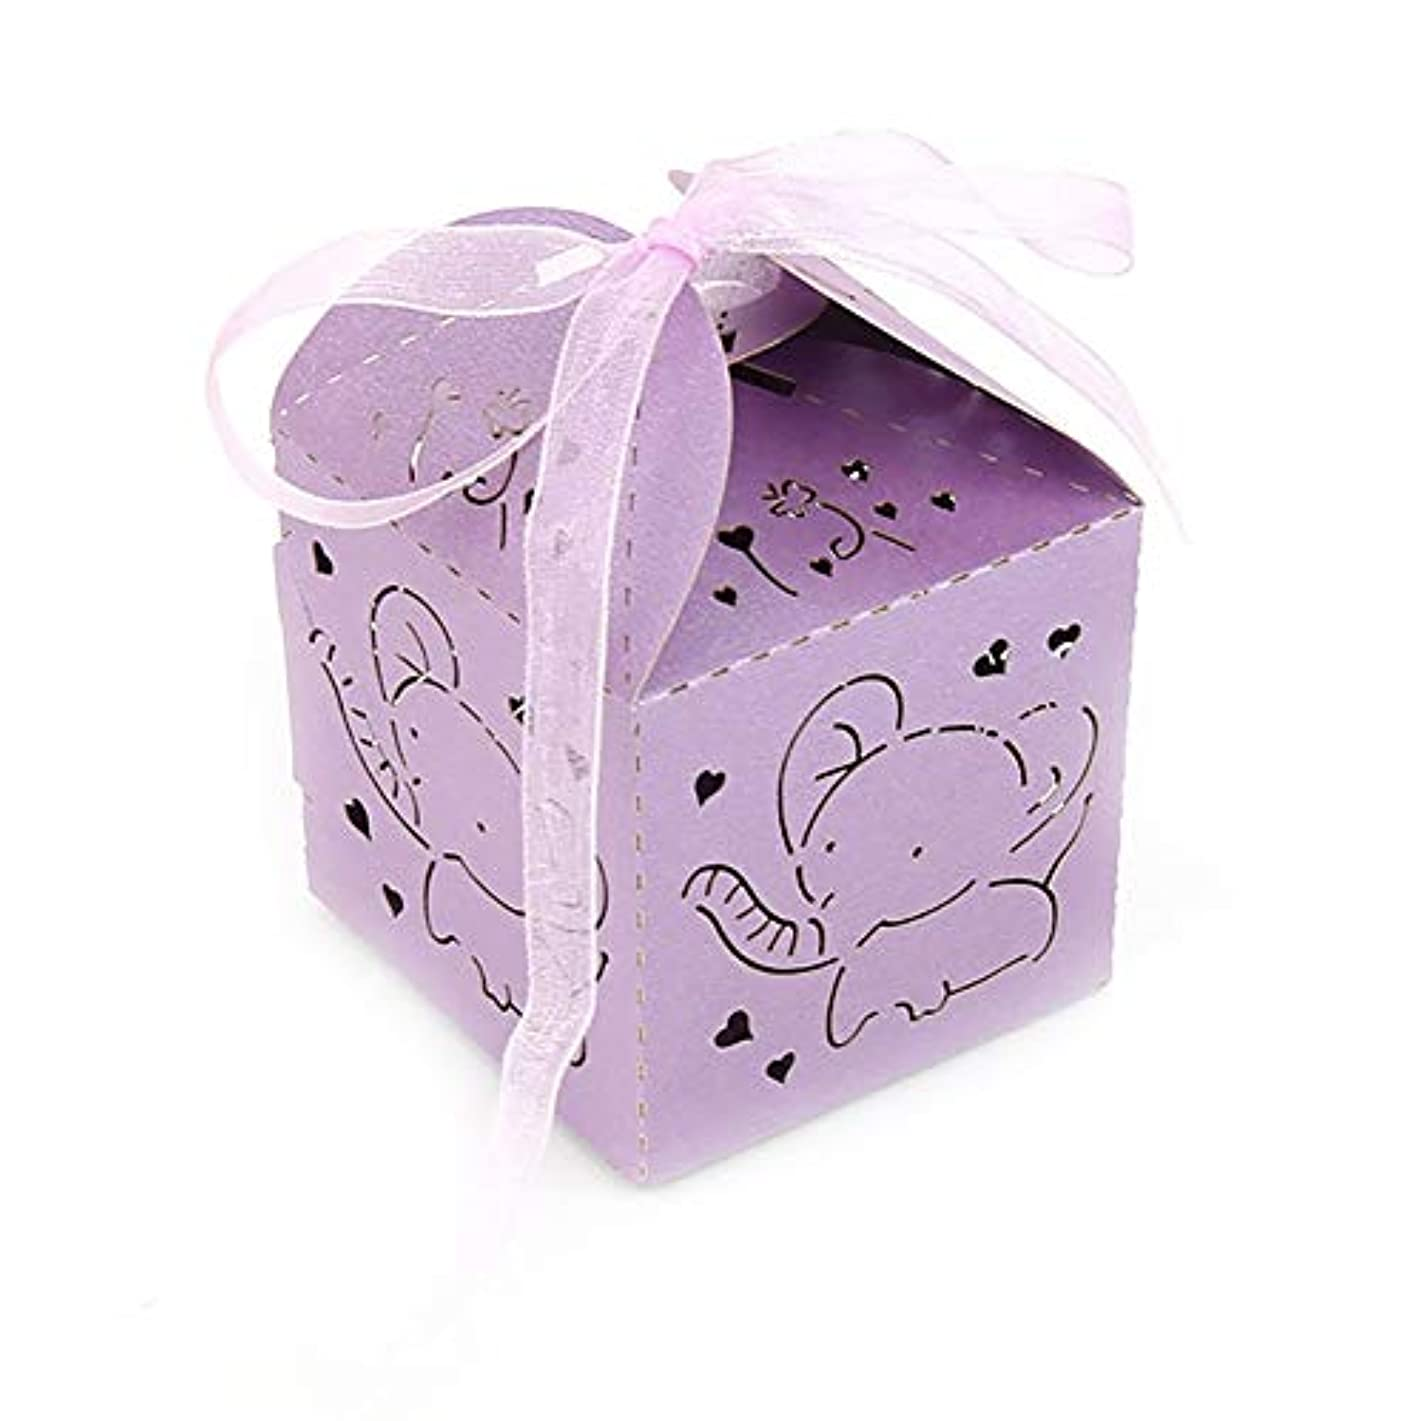 50 Pack Purple Elephant Baby Shower Favor Laser Cut Paper Party Treat Box Girl First 1st Birthday Christening Decoration Holiday Gift Wrapping Supplies